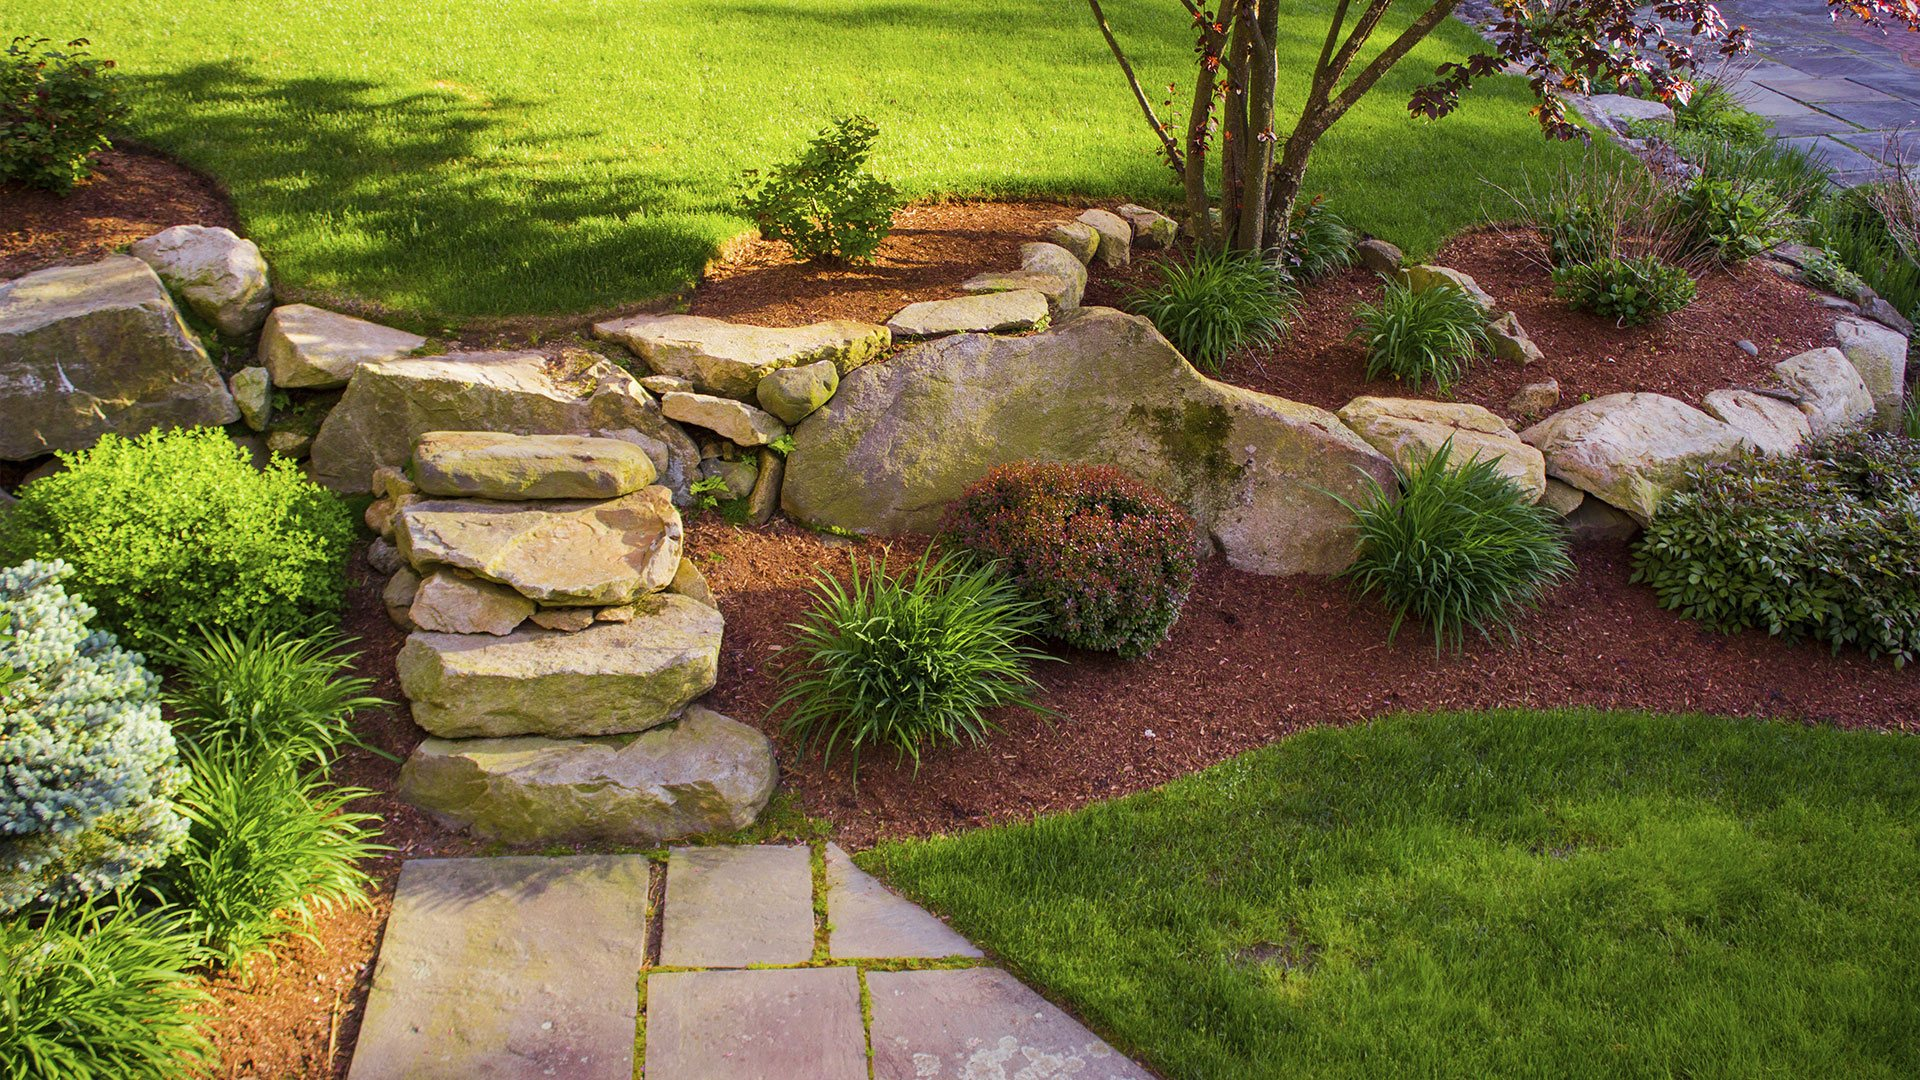 Lawns & More Commercial Property Maintenance, Landscaping and Lawn Care slide 3